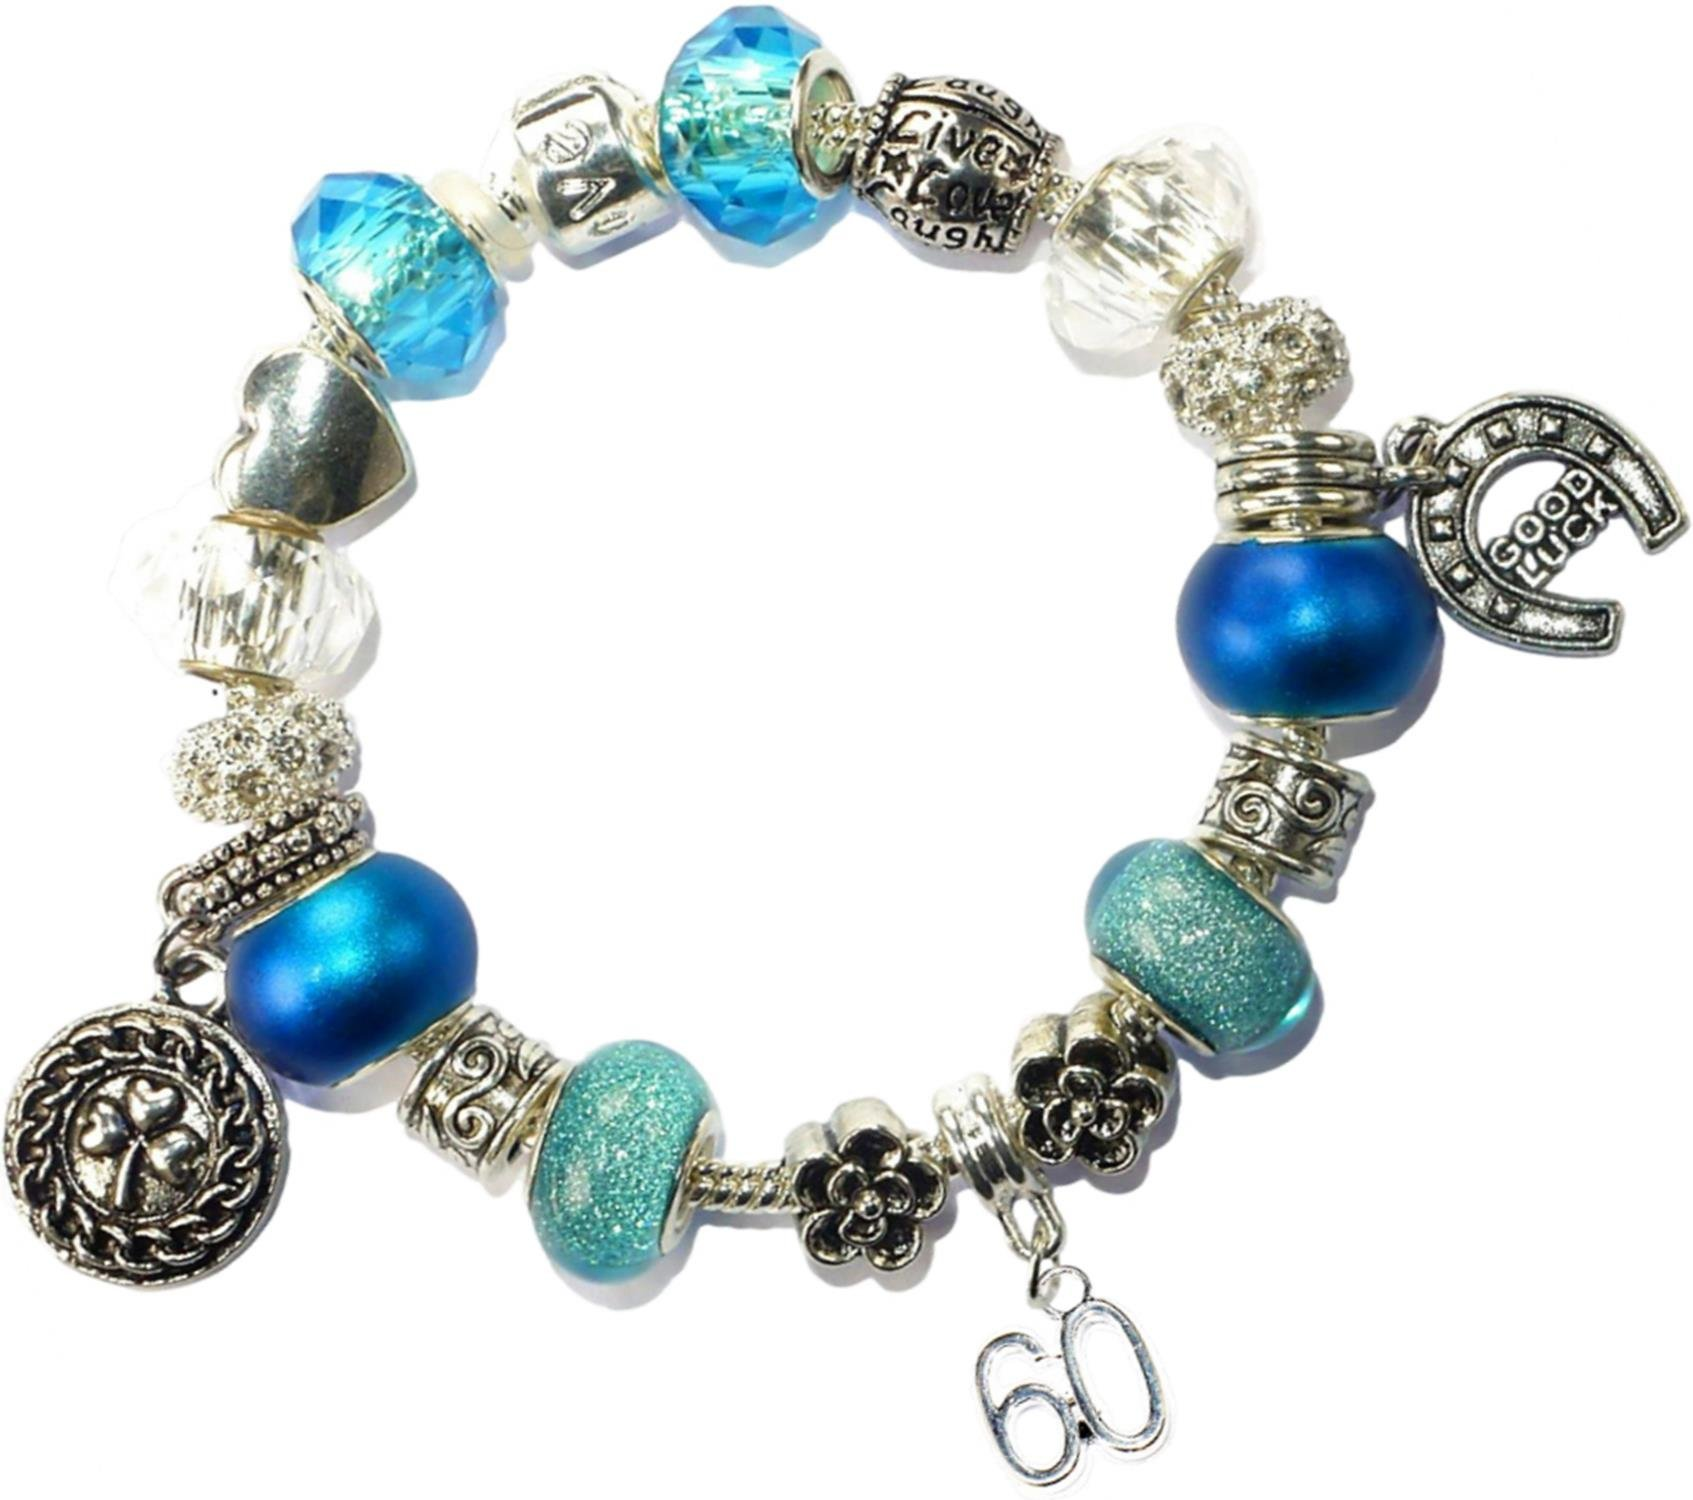 Charm Buddy 60th Birthday Good Luck Lucky Blue Silver Pandora Style Bracelet With Charms Gift Box Jewelry